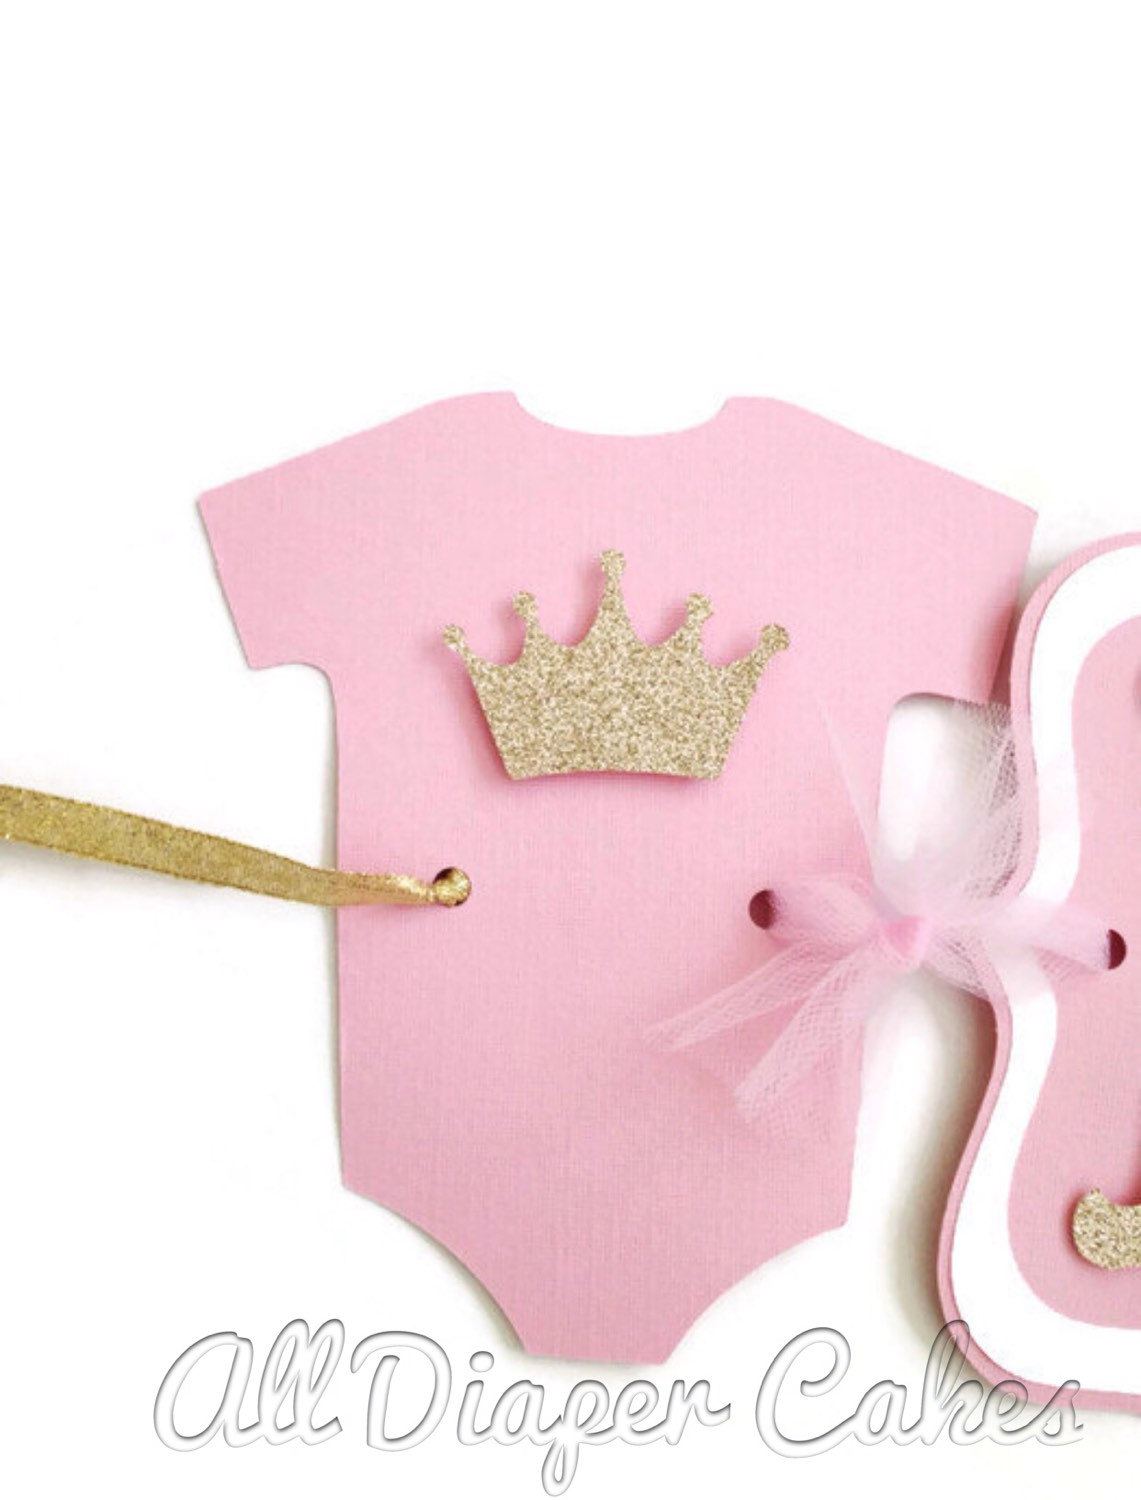 Full Size of Baby Shower:89+ Indulging Baby Shower Banner Picture Inspirations Baby Shower Banner Princess Baby Shower Banner Pink And Gold Banner